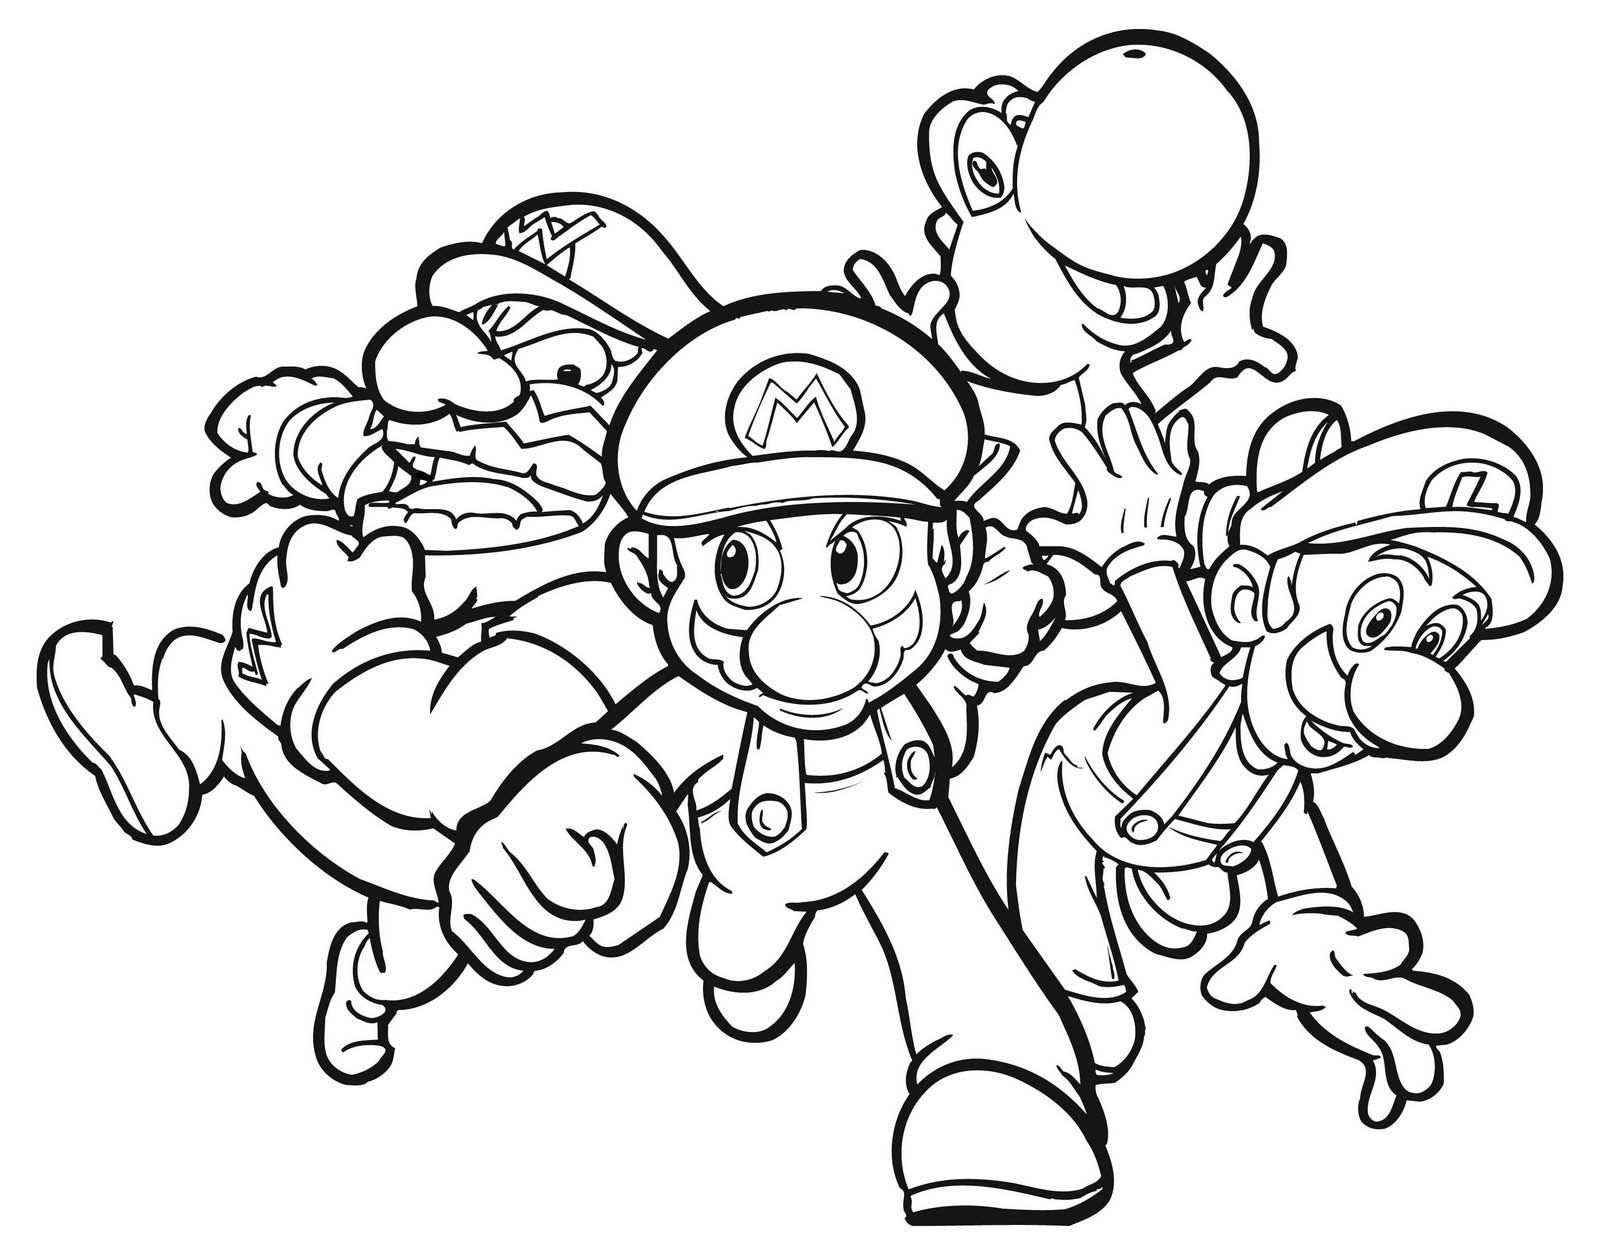 Free Printable Mario Coloring Pages for Kids to Print Of Toad Mario Drawing at Getdrawings Gallery